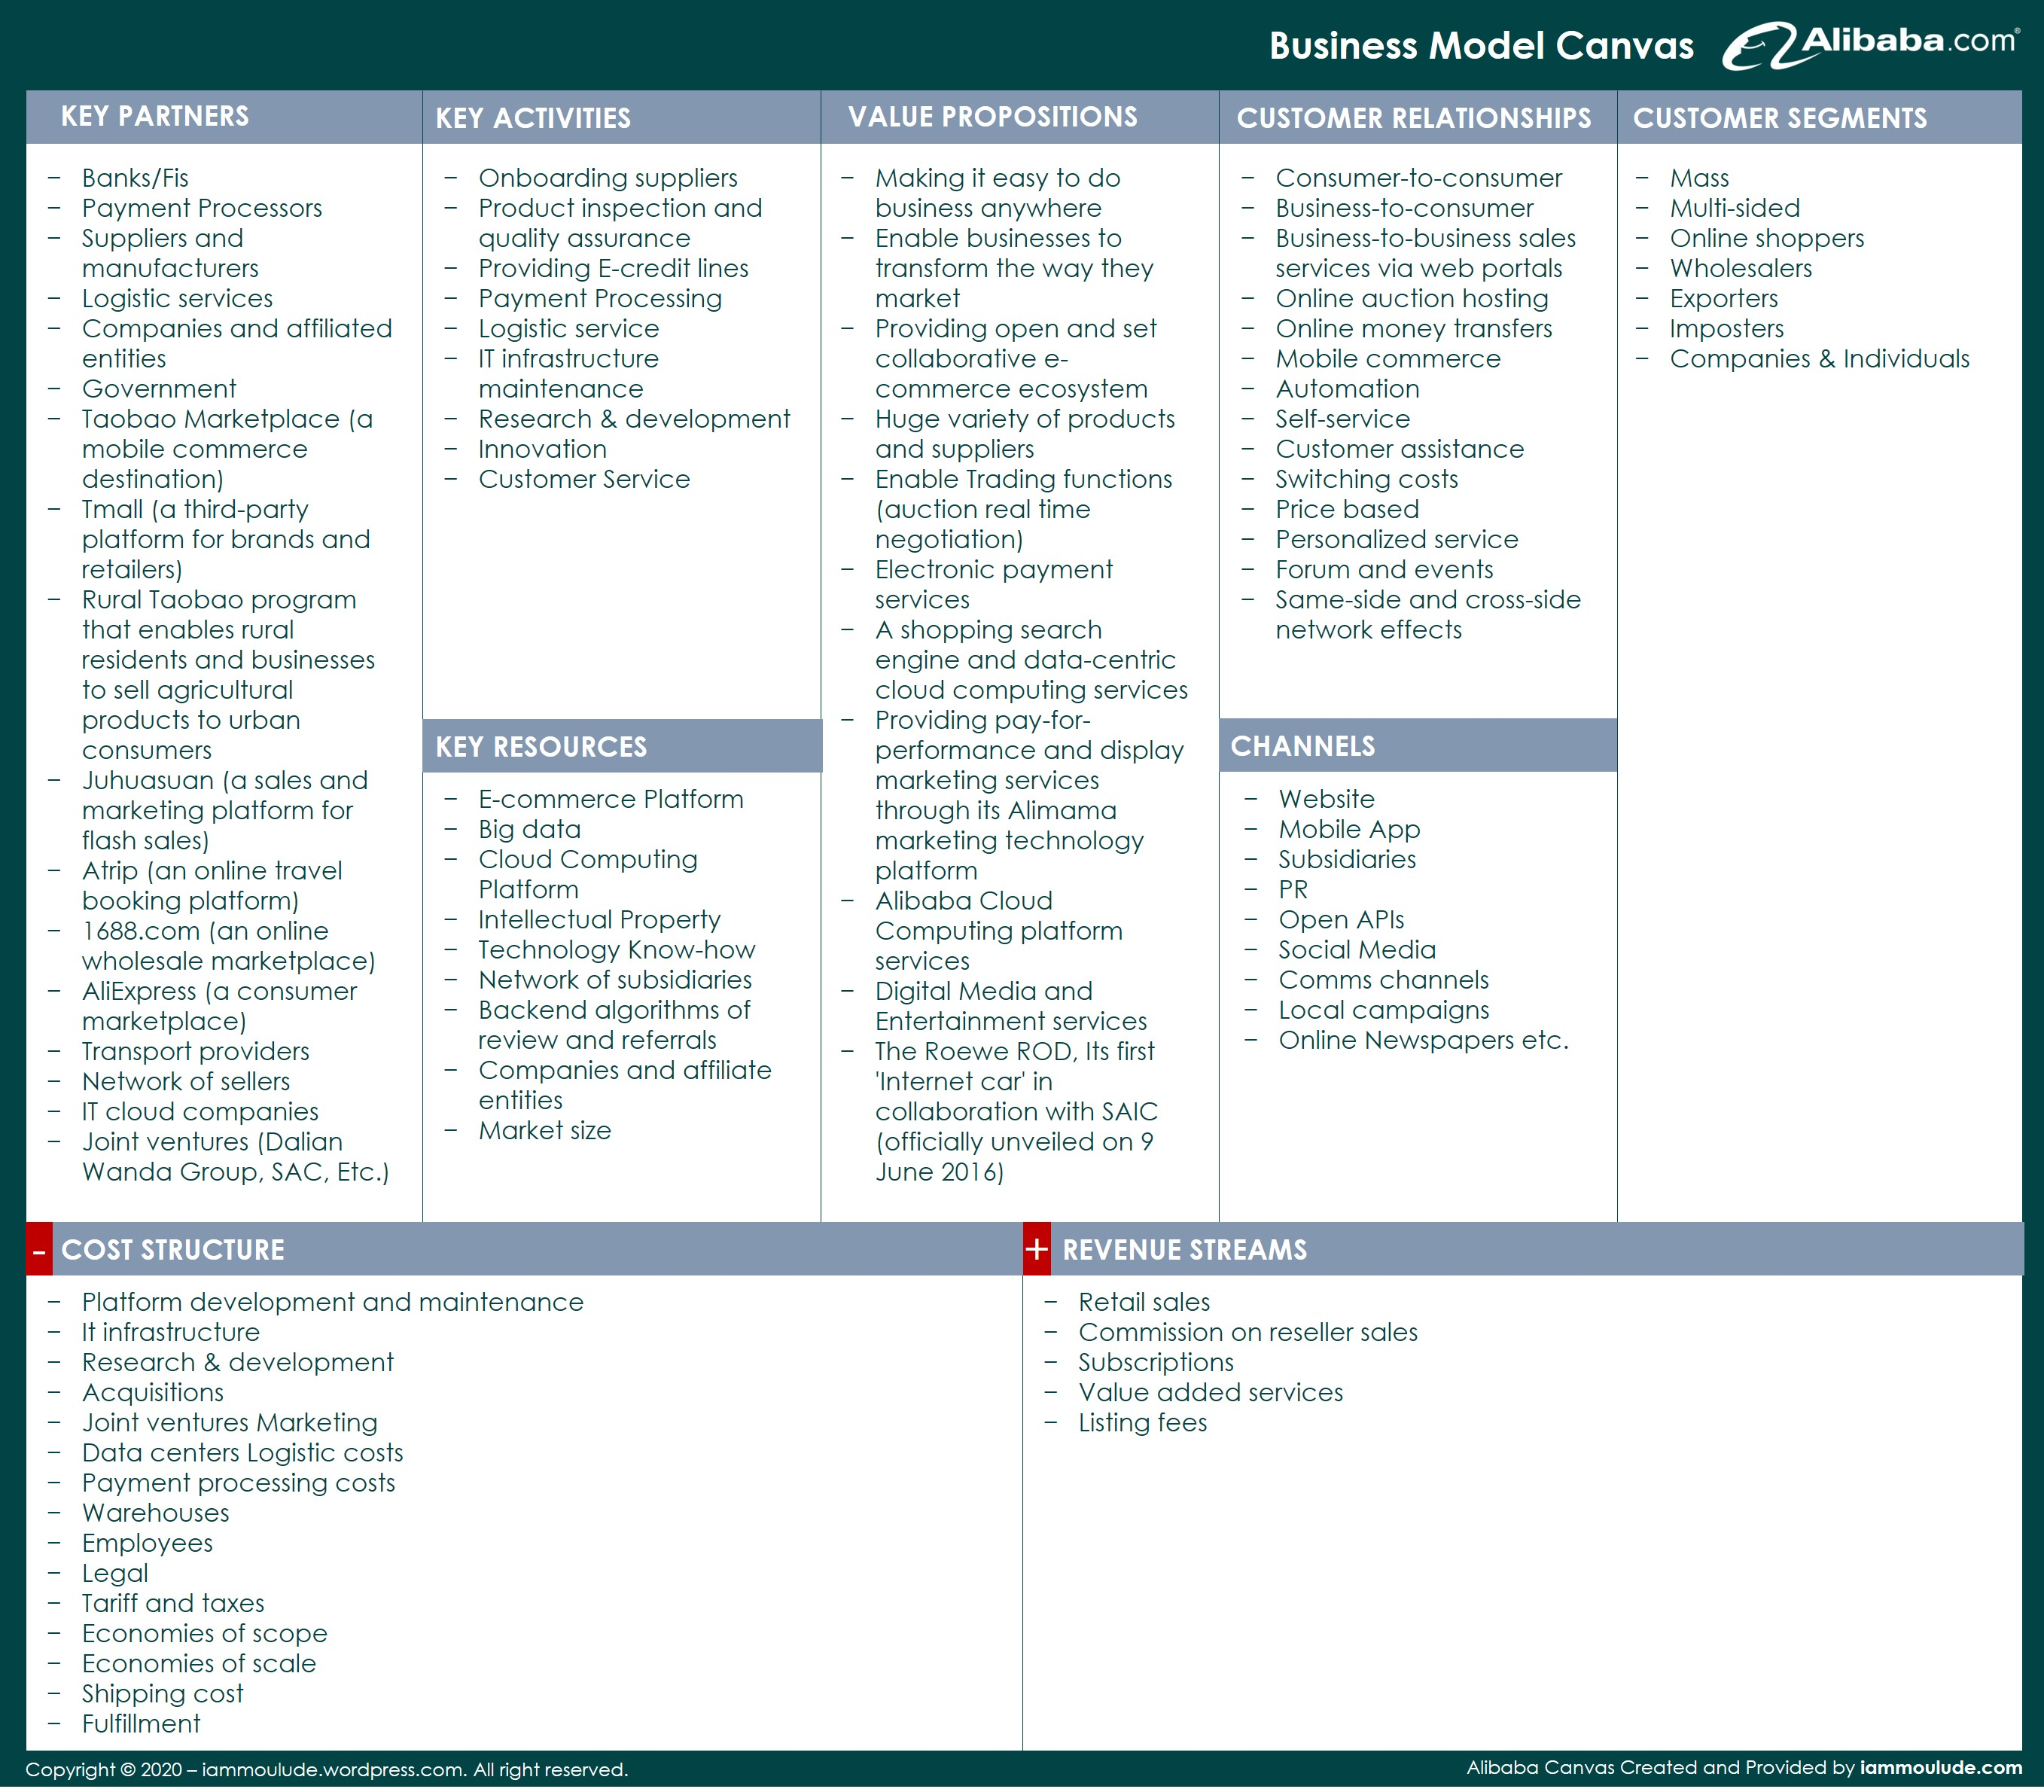 Business Model Canvas_Alibaba Example